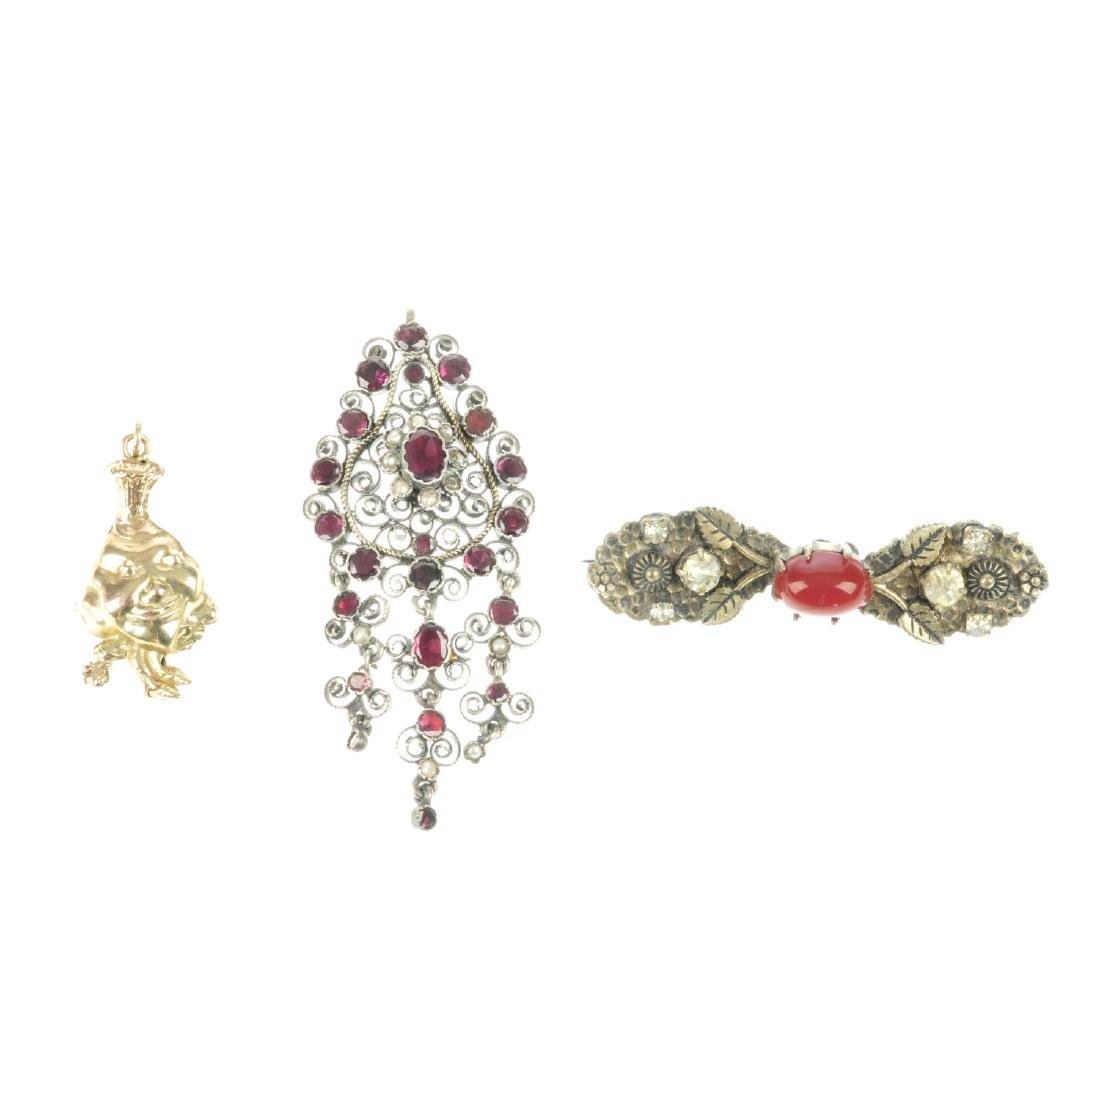 A gem set pendant, a brooch and a 9ct gold charm. The